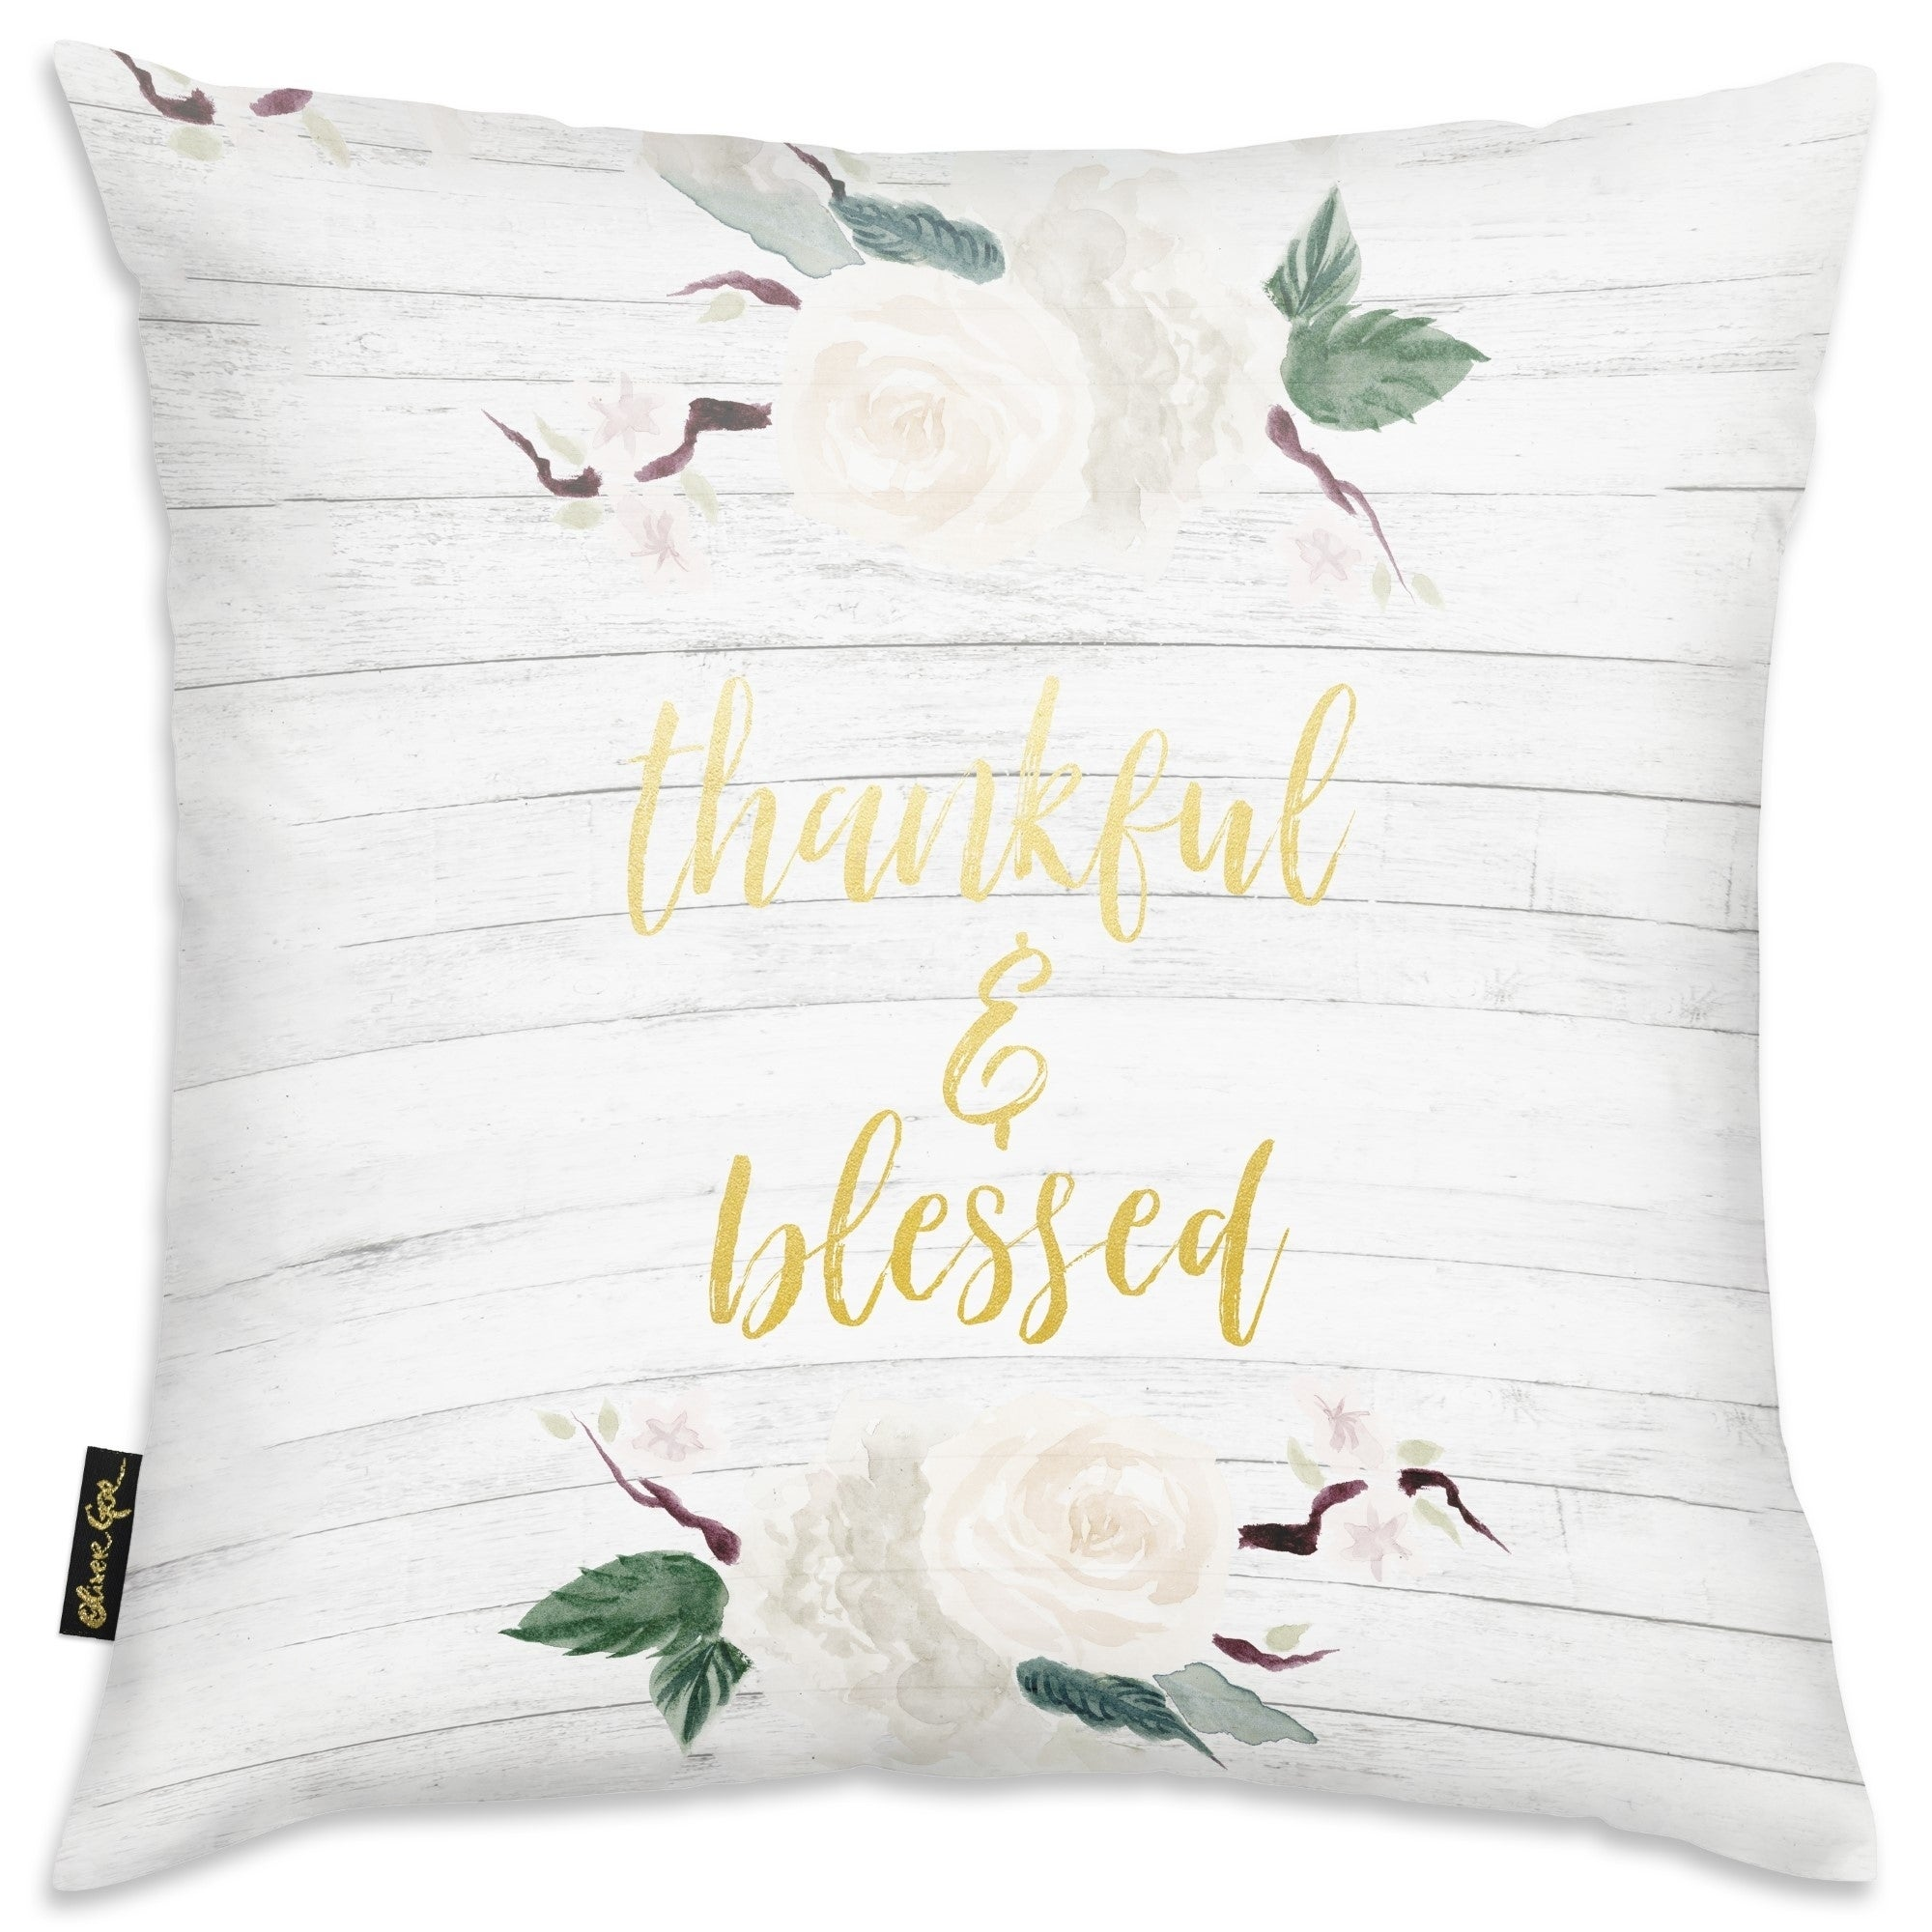 Oliver Gal Thankful And Blessed Square Typography Decorative Throw Pillow Inspirational Quotes And Sayings Gold Gray Overstock 31047883